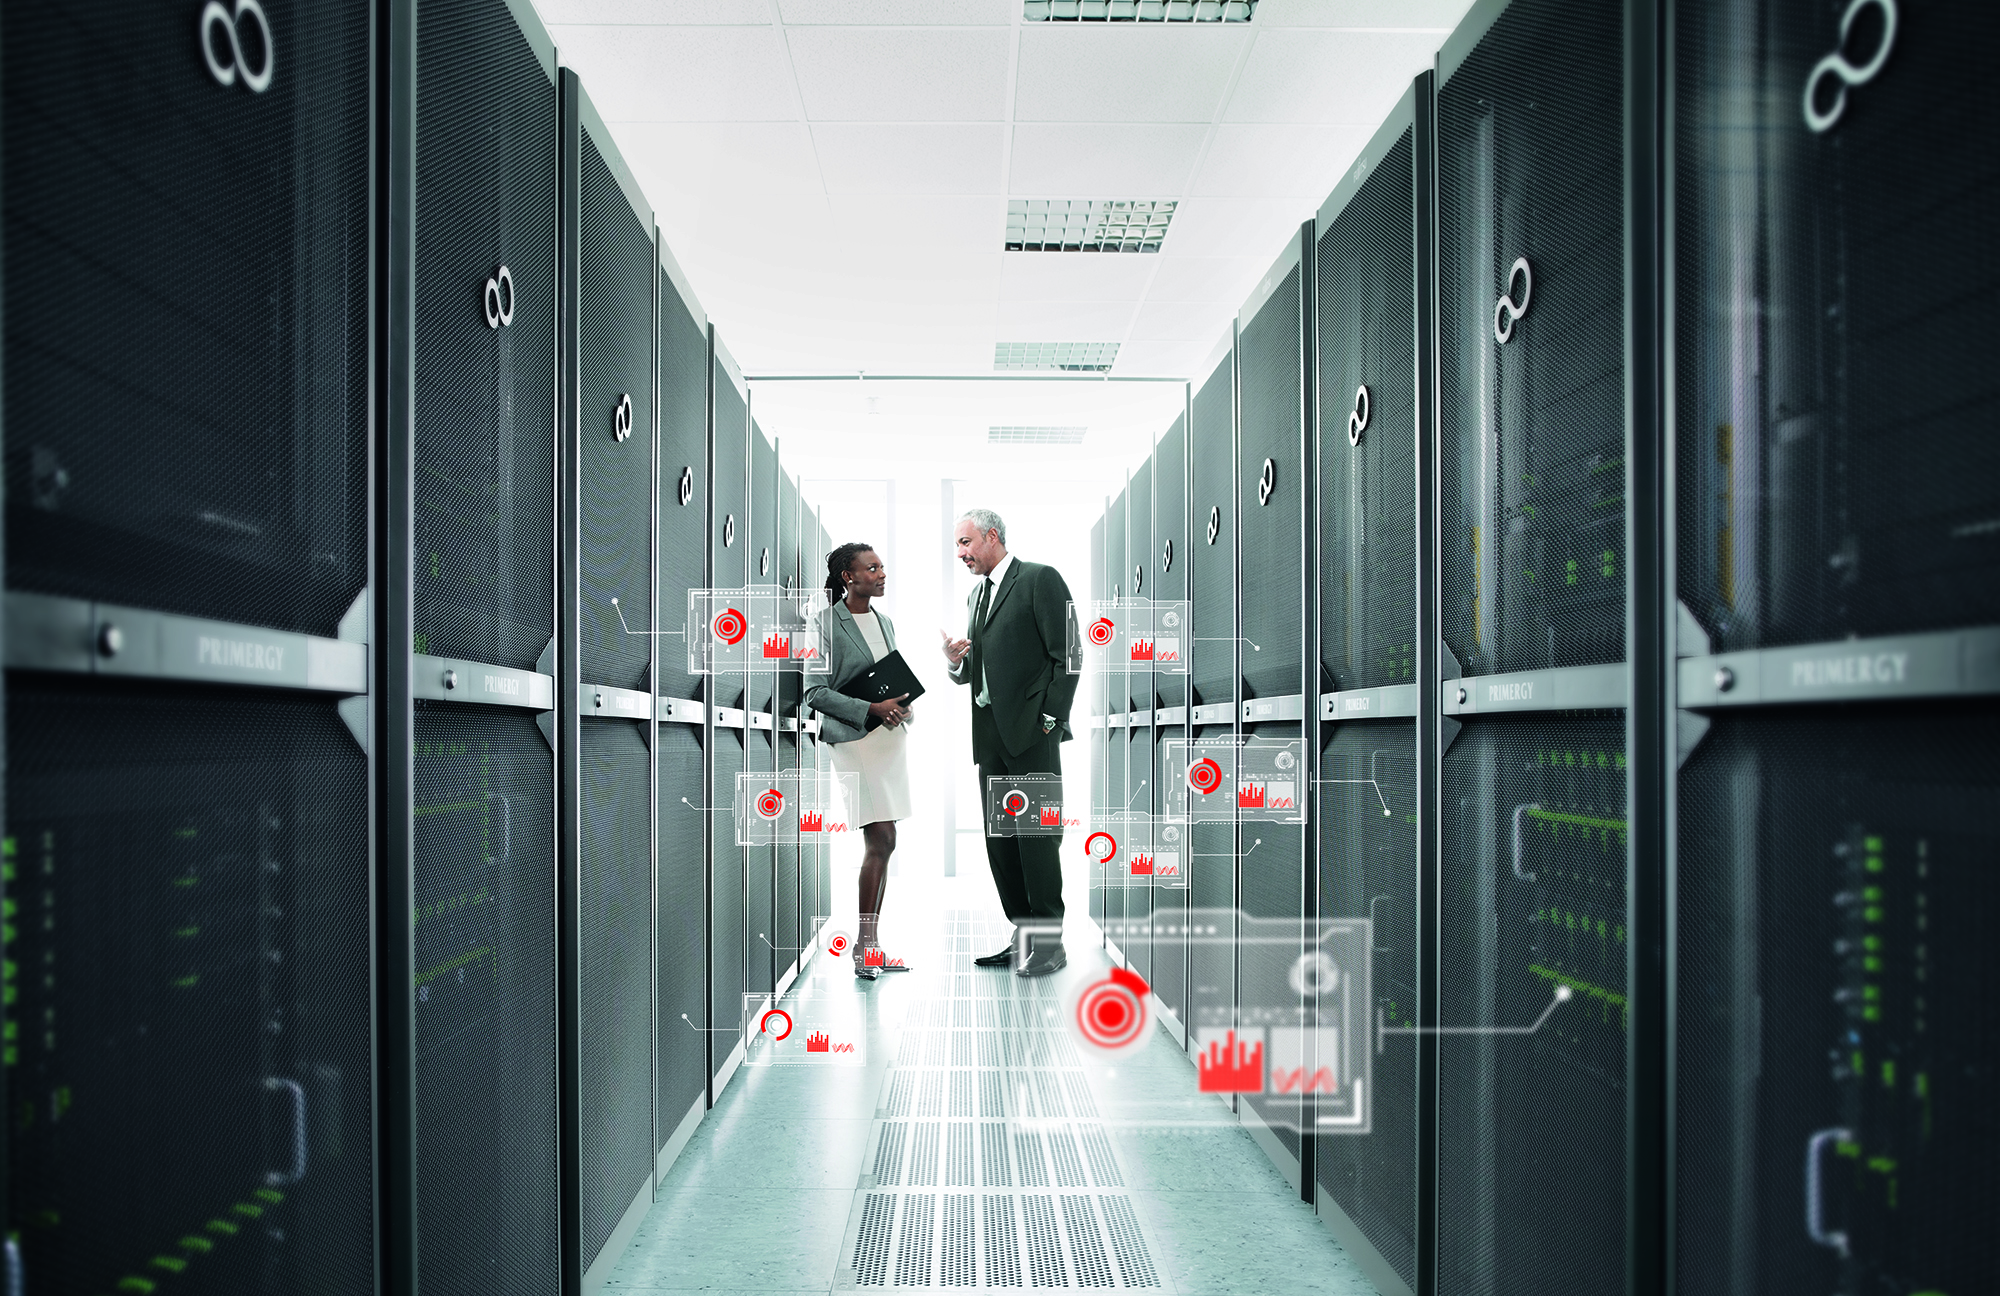 Main visual : How to get your IT infrastructure fit for the digital world